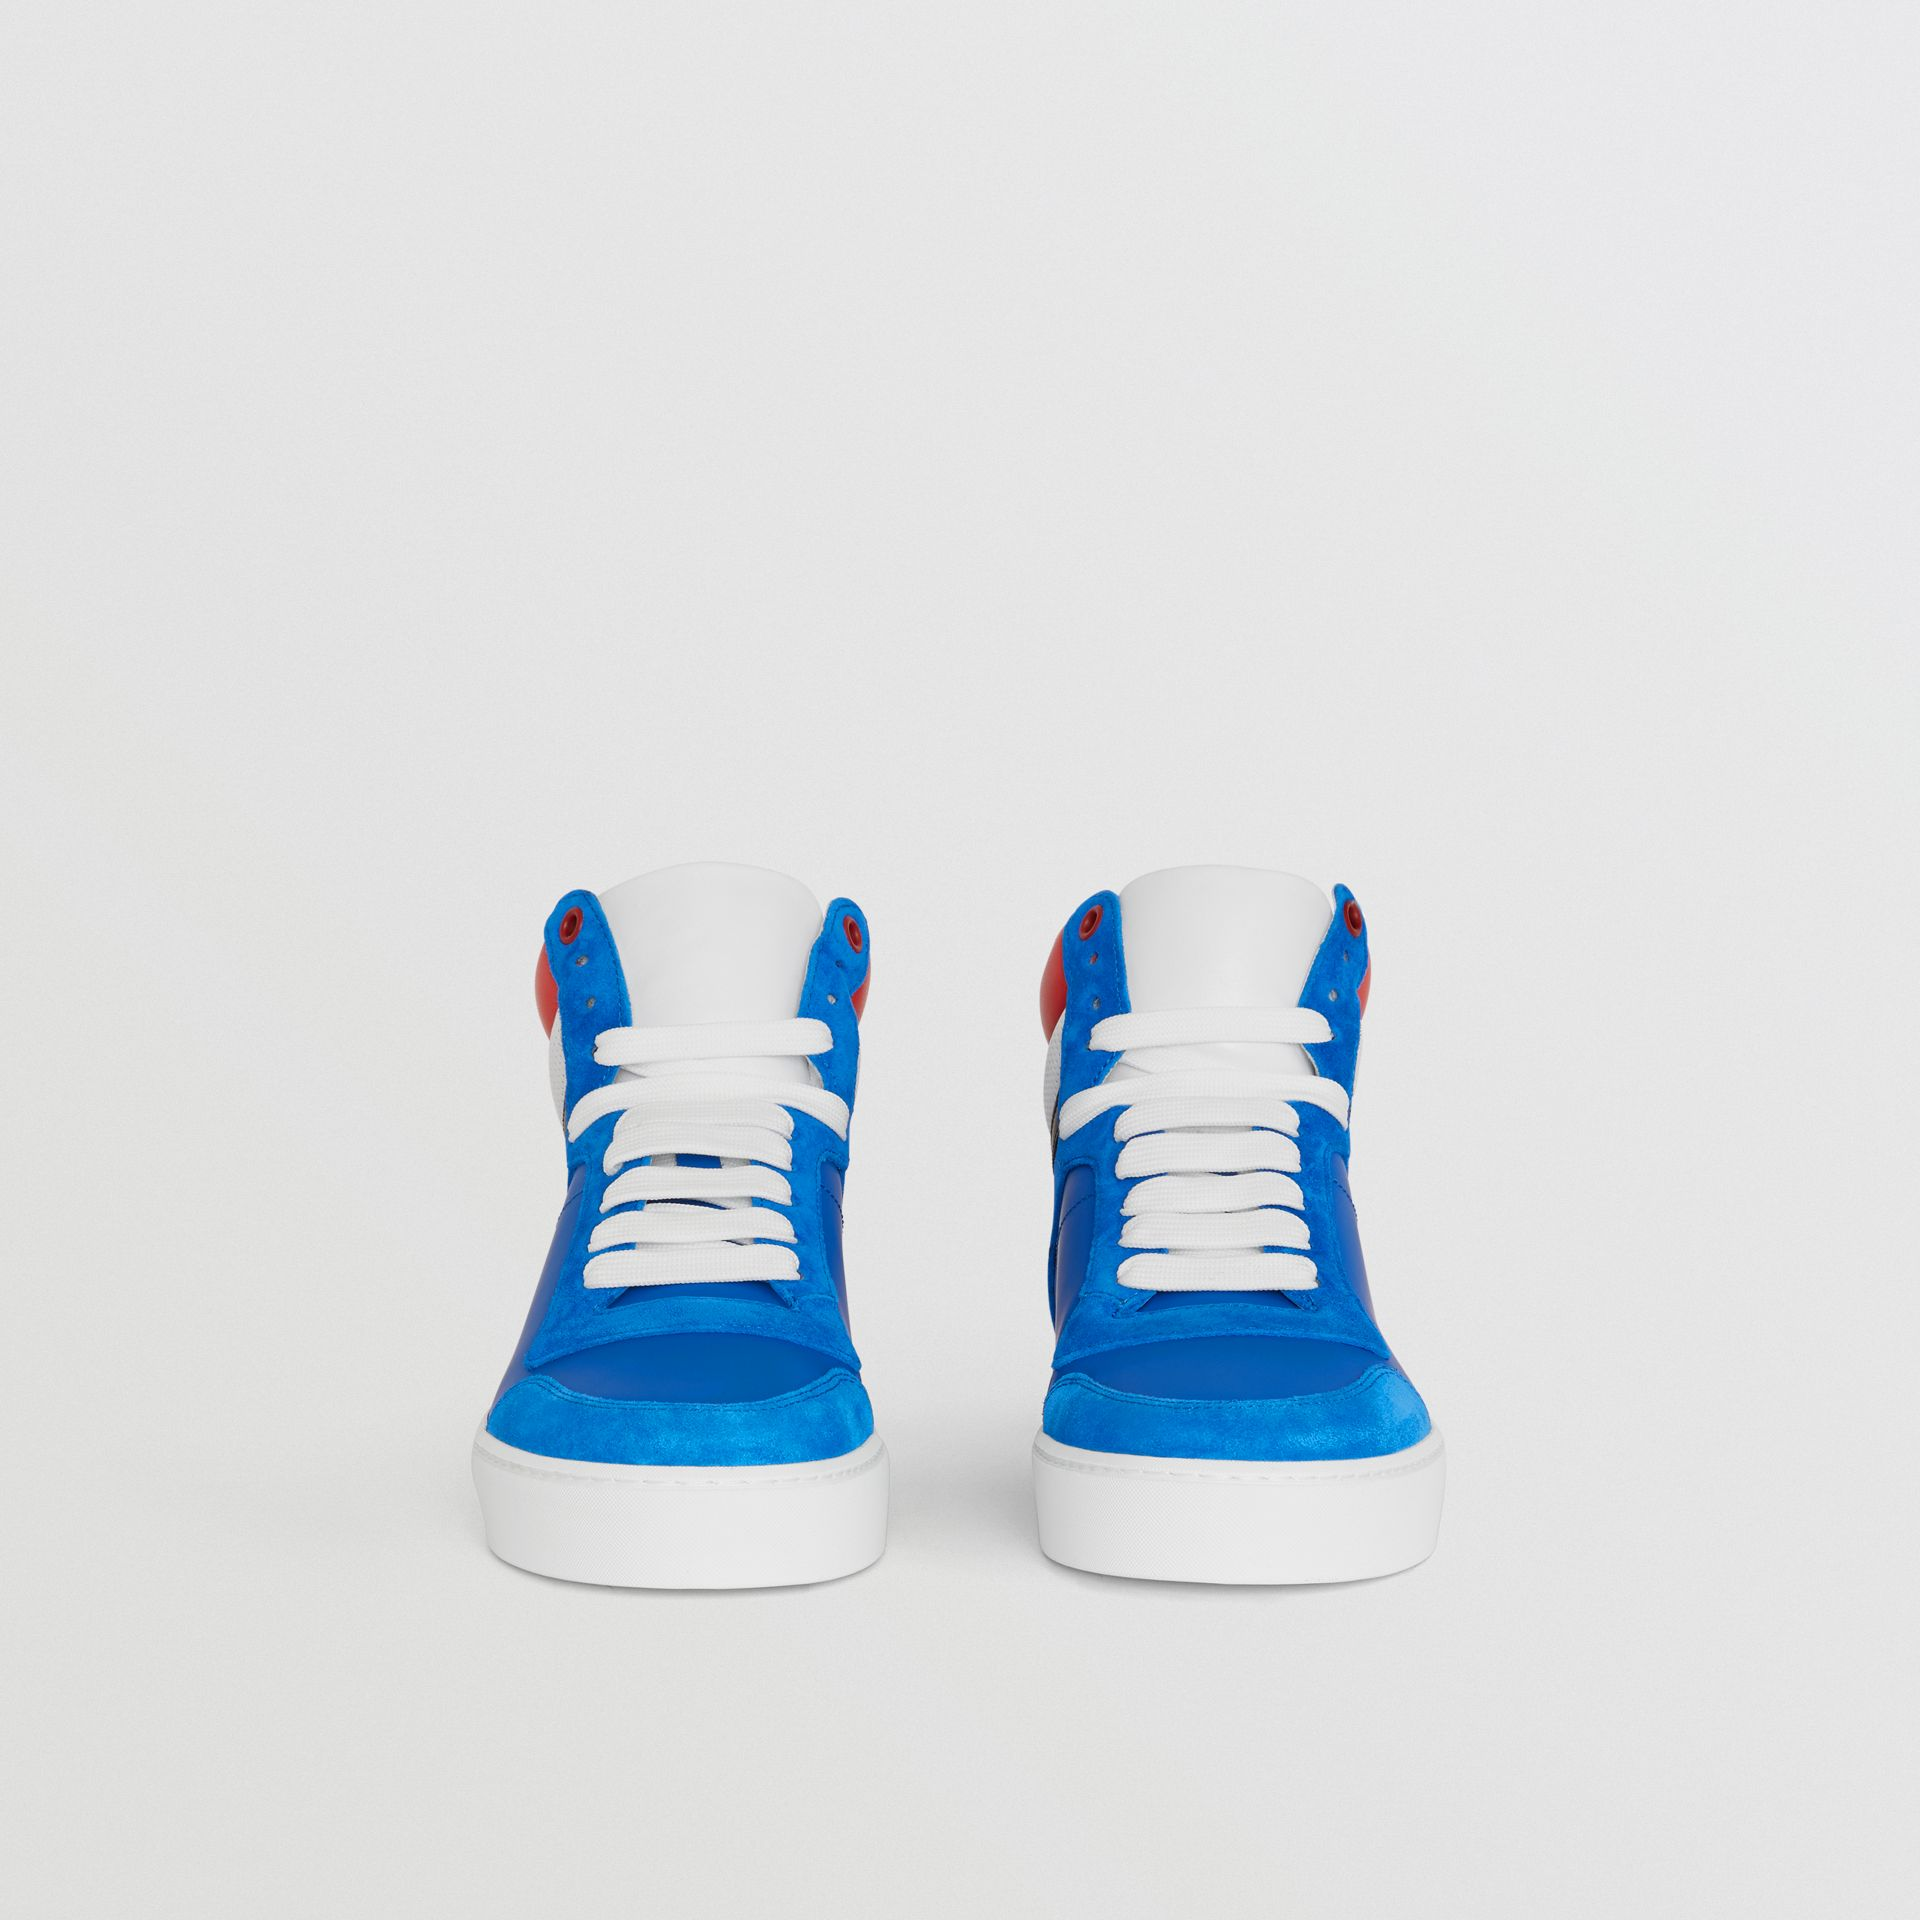 Leather and Suede High-top Sneakers in Bright Sky Blue - Women | Burberry Singapore - gallery image 3